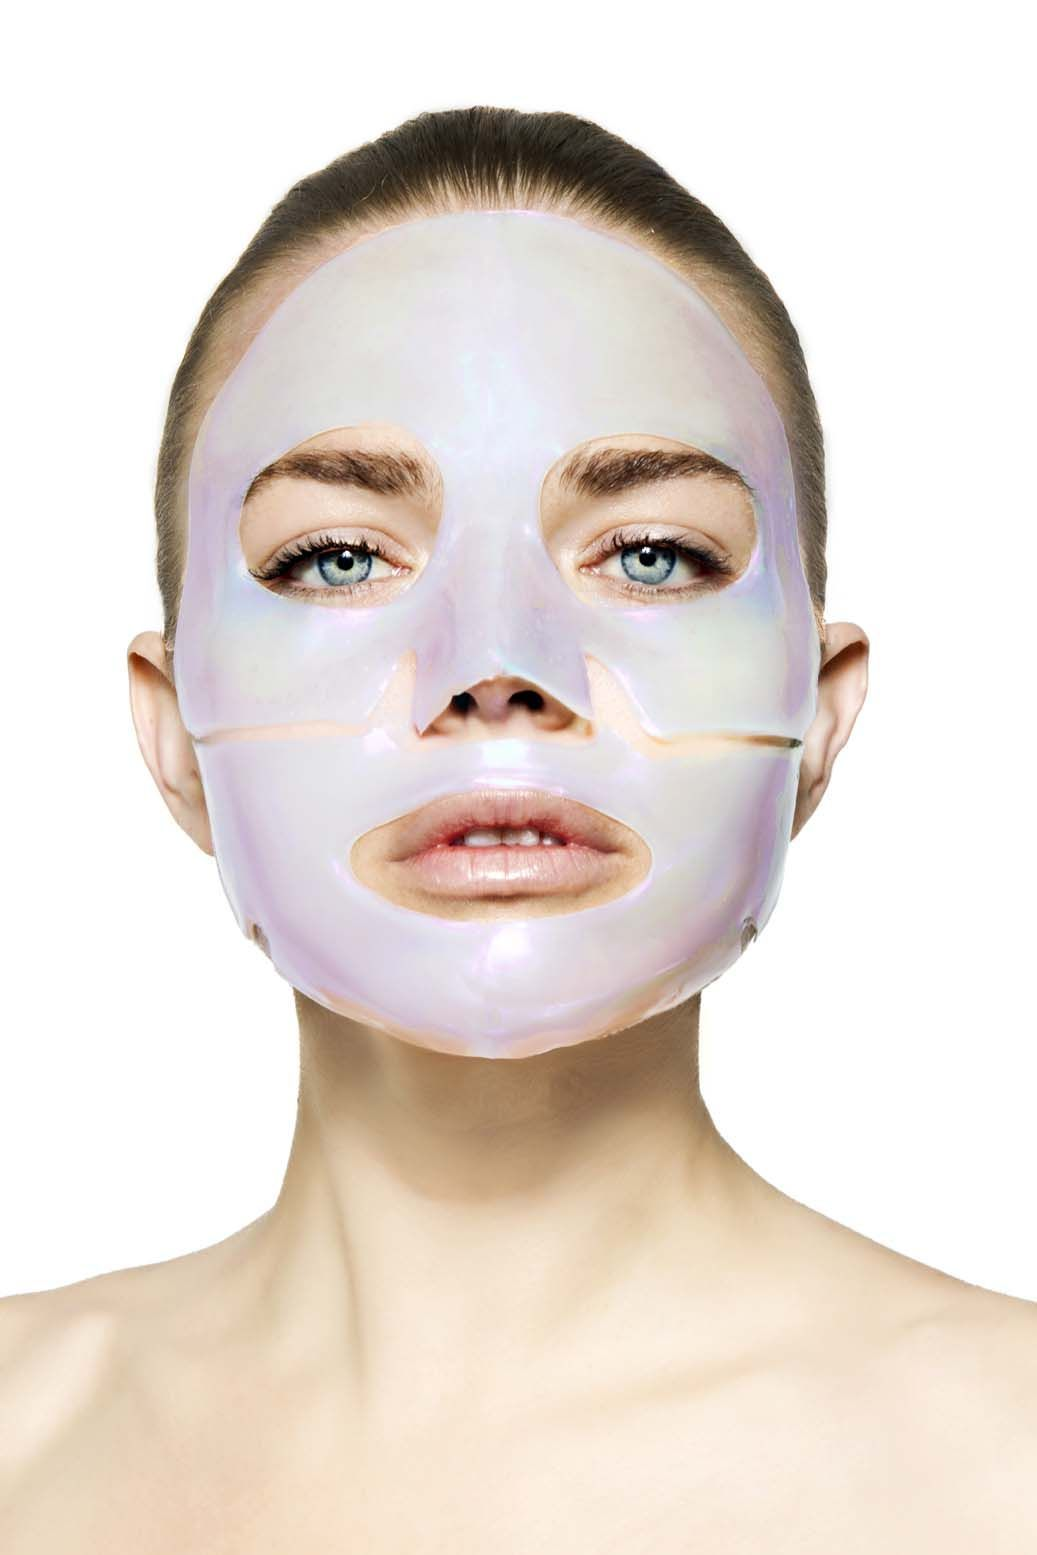 Diamond Radiance Collagen Face Mask 4 Treatments 150 00 Beauty Products Secrets Anti Aging Fac Diy Facial Mask Homemade Facial Mask Face Mask Diy Acne